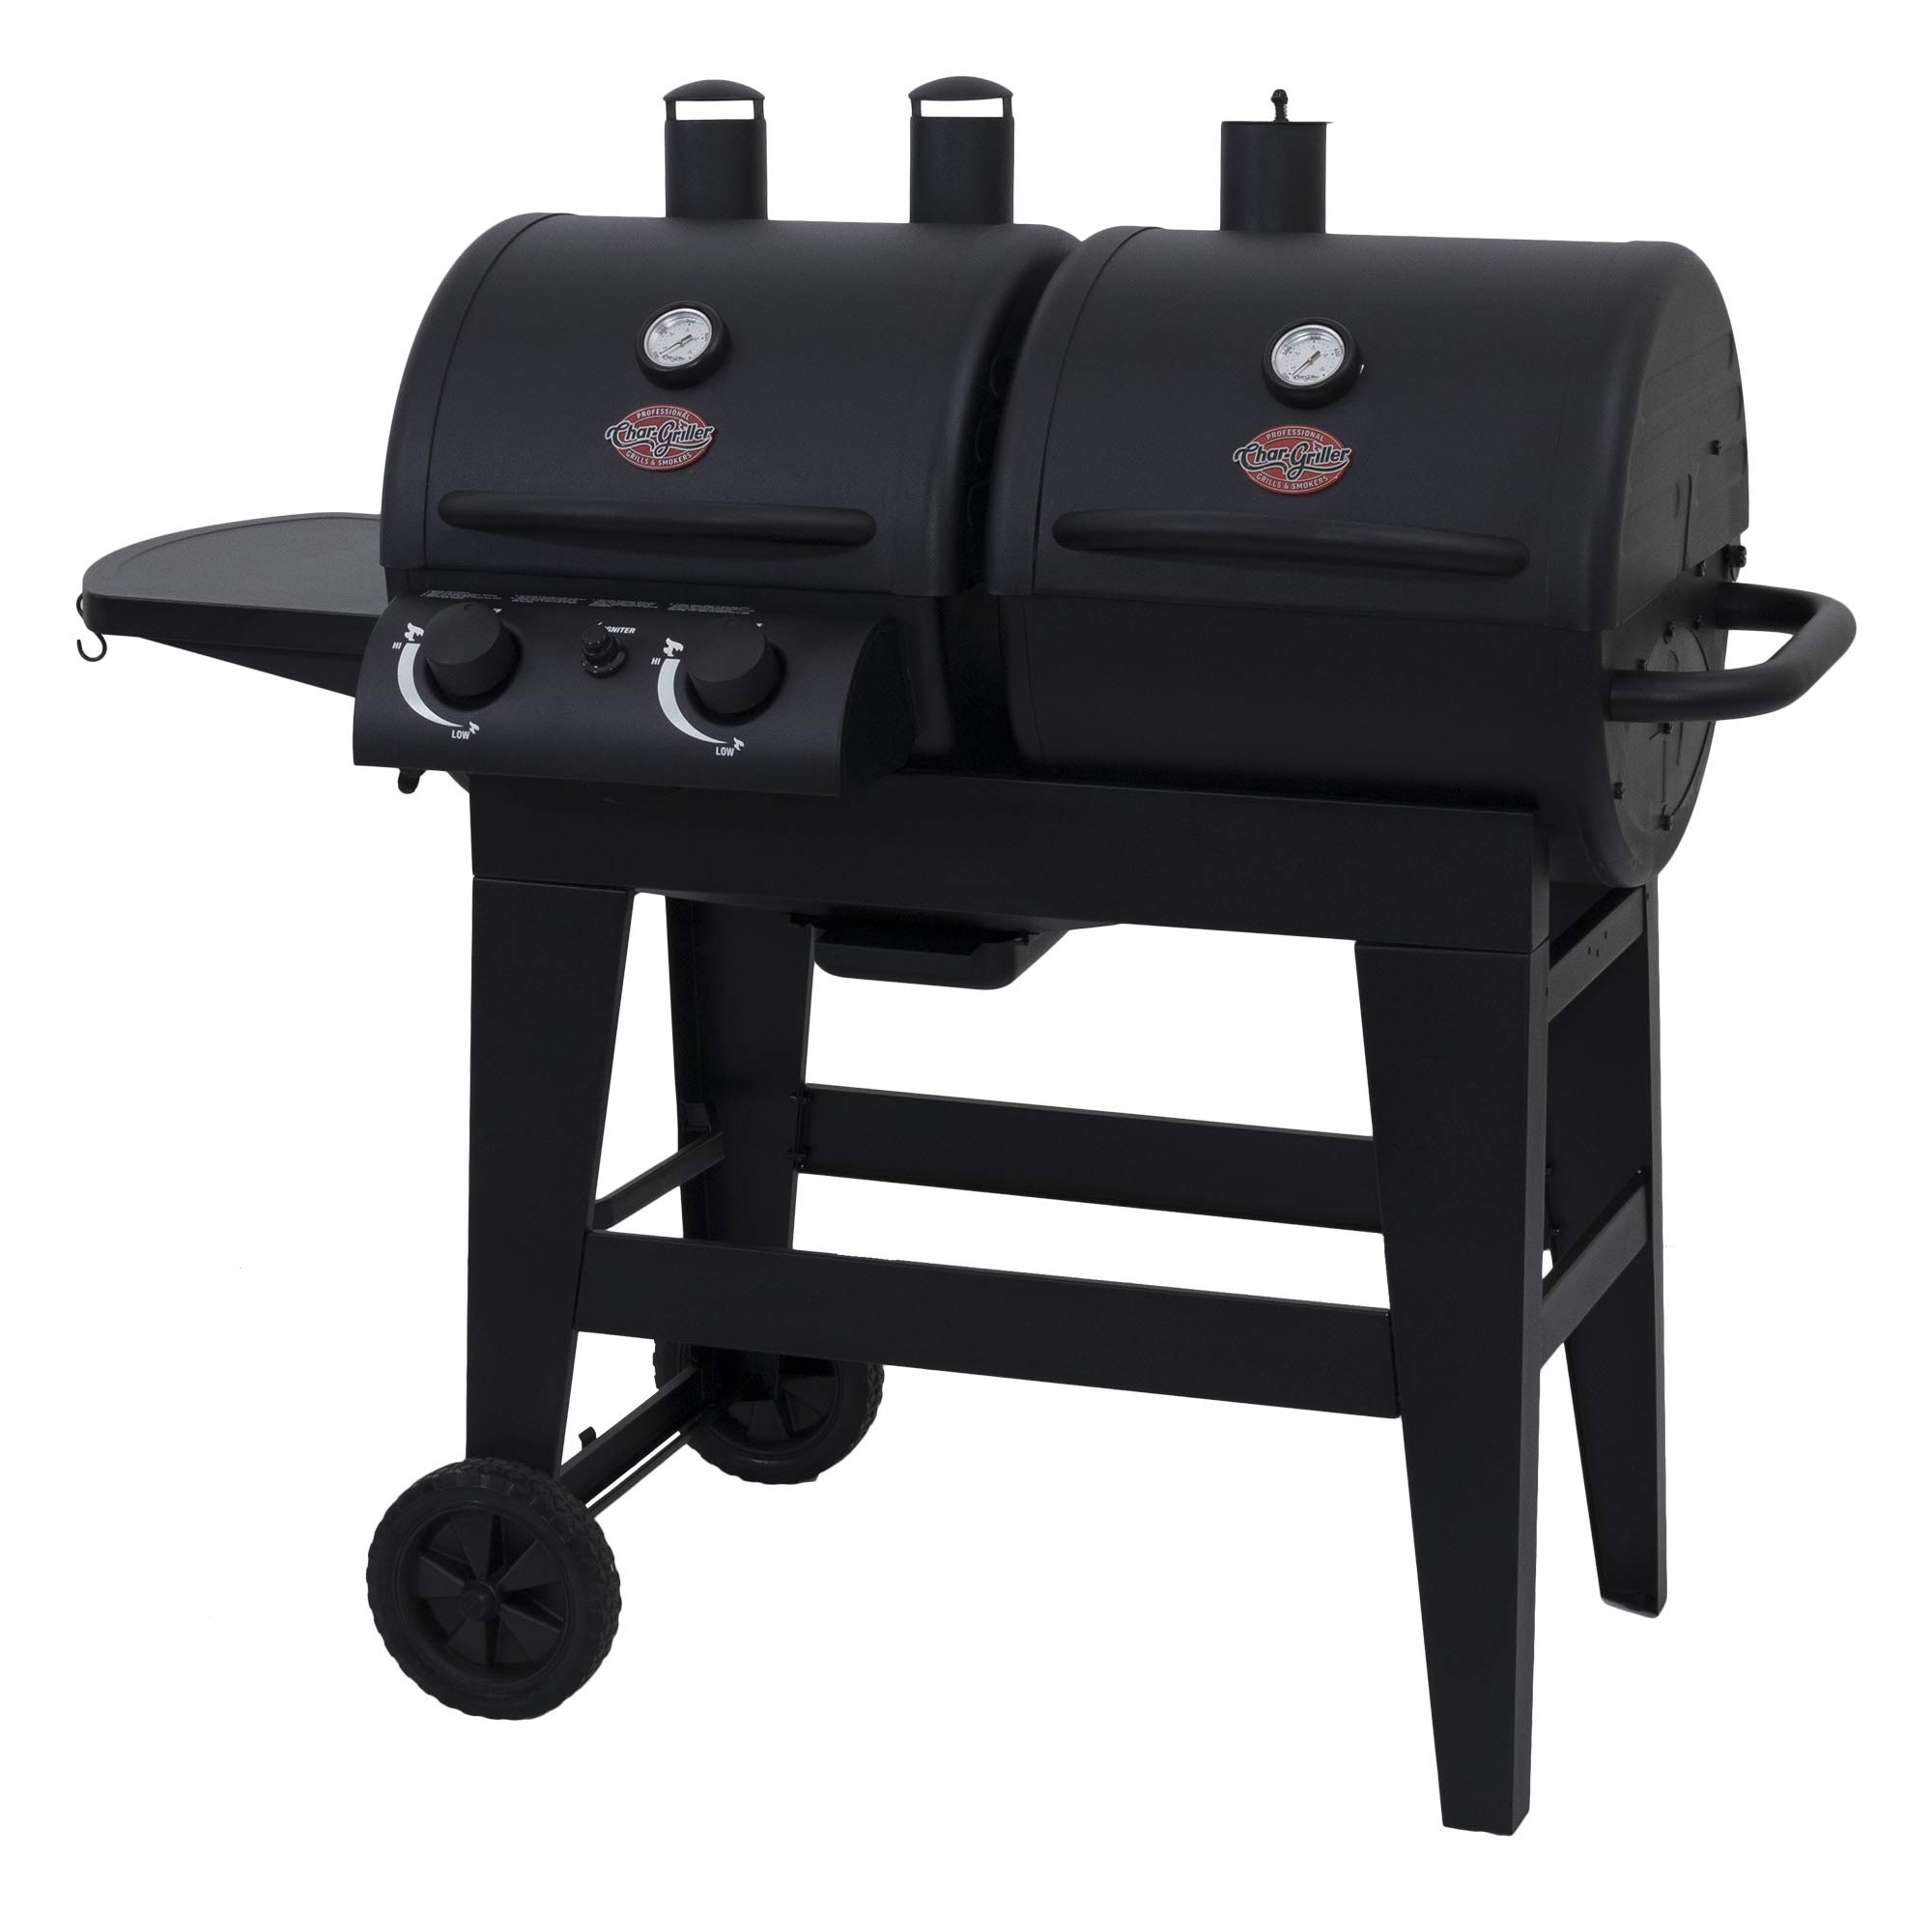 Char-Griller 5030 2-Burner Gas & Charcoal Grill Dual Function, Black by Char-Griller